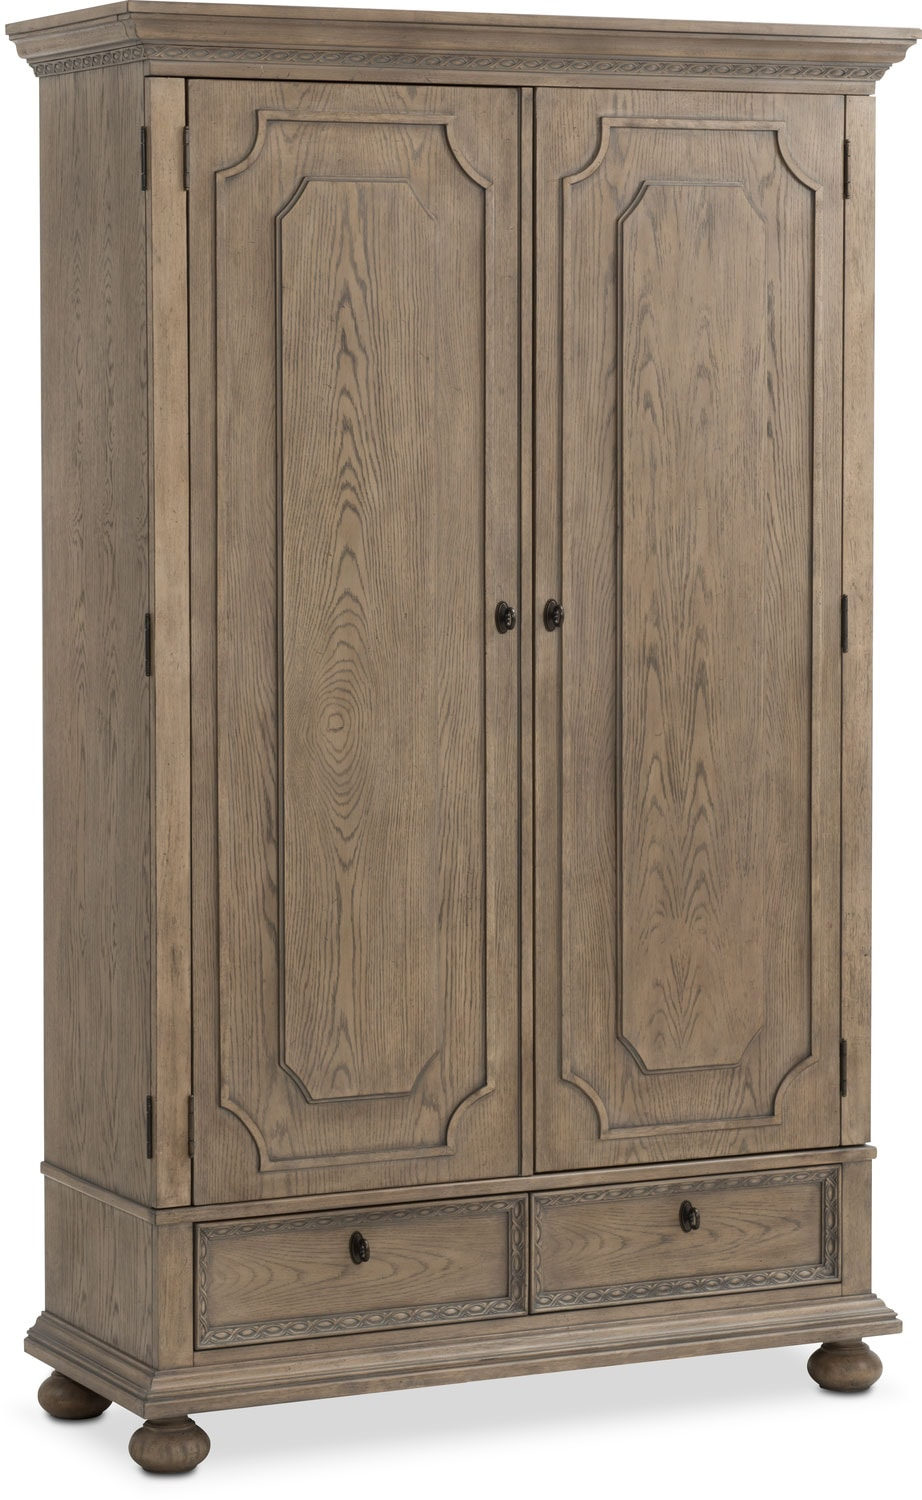 Bedroom Furniture - Langham Armoire - Natural